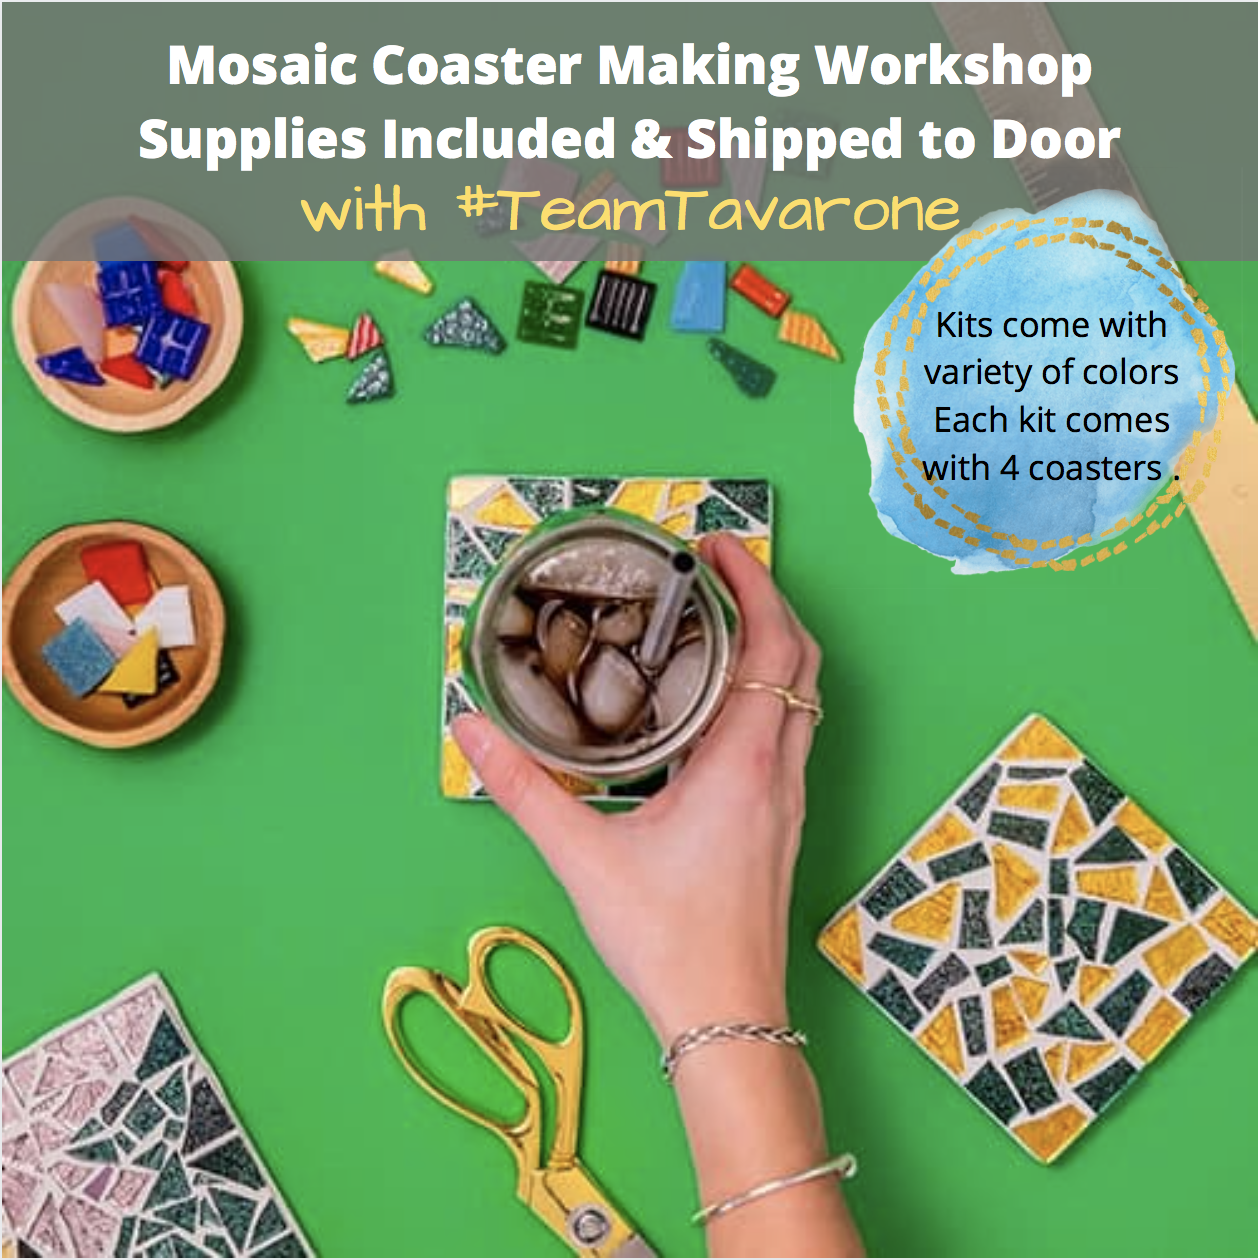 A Mosaic Coaster Making Workshop Team Tavarone Supplies Shipped to Door experience project by Yaymaker